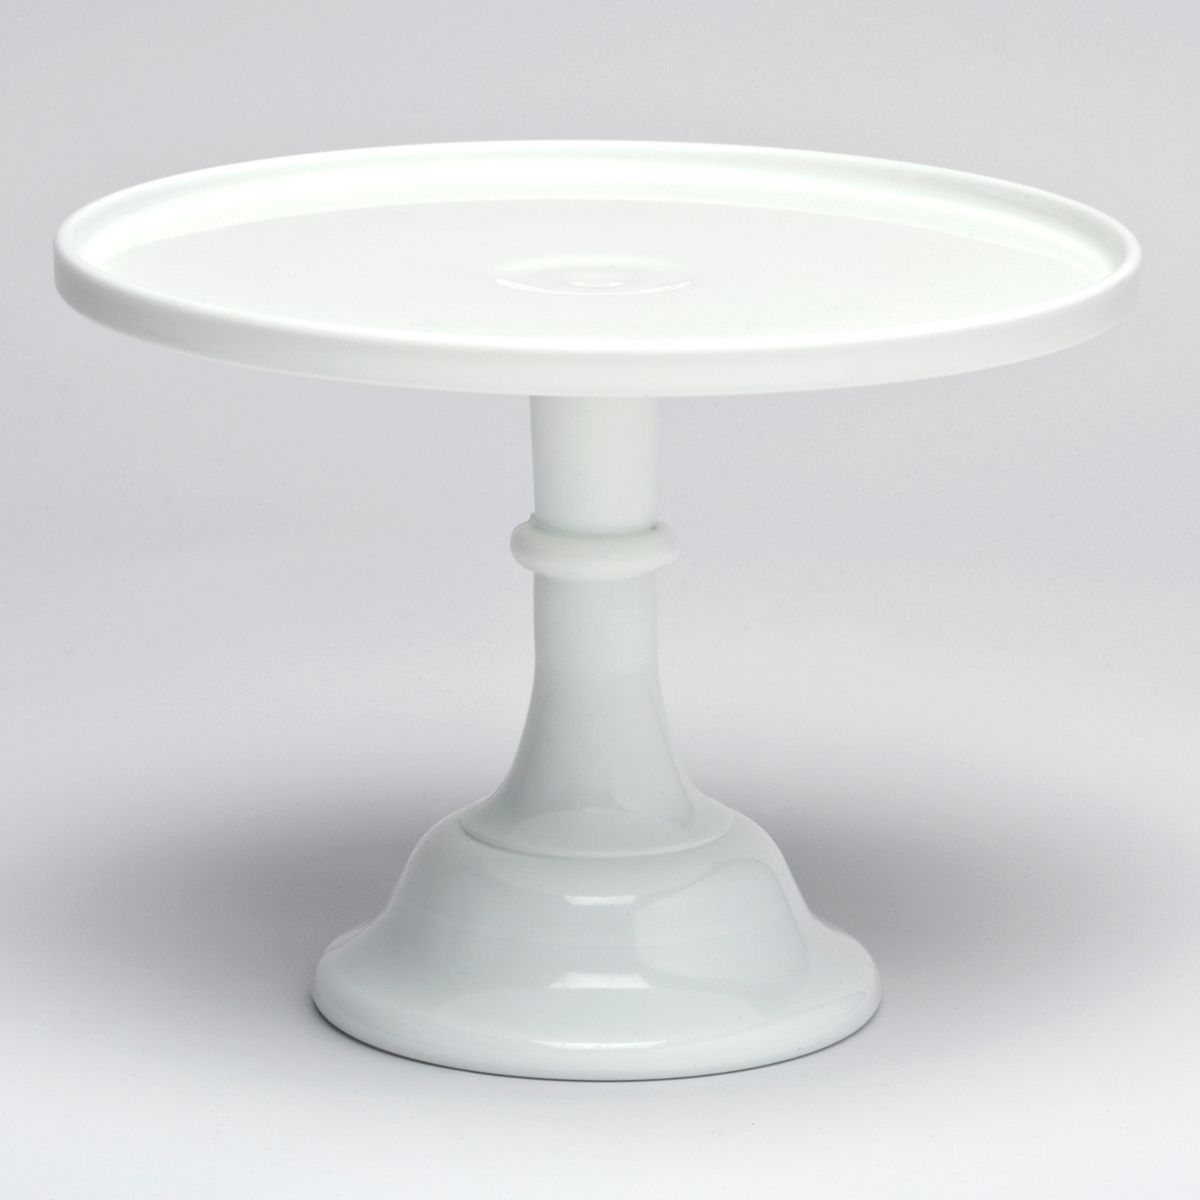 milk cake love it glass stands pin pink pedestal stand